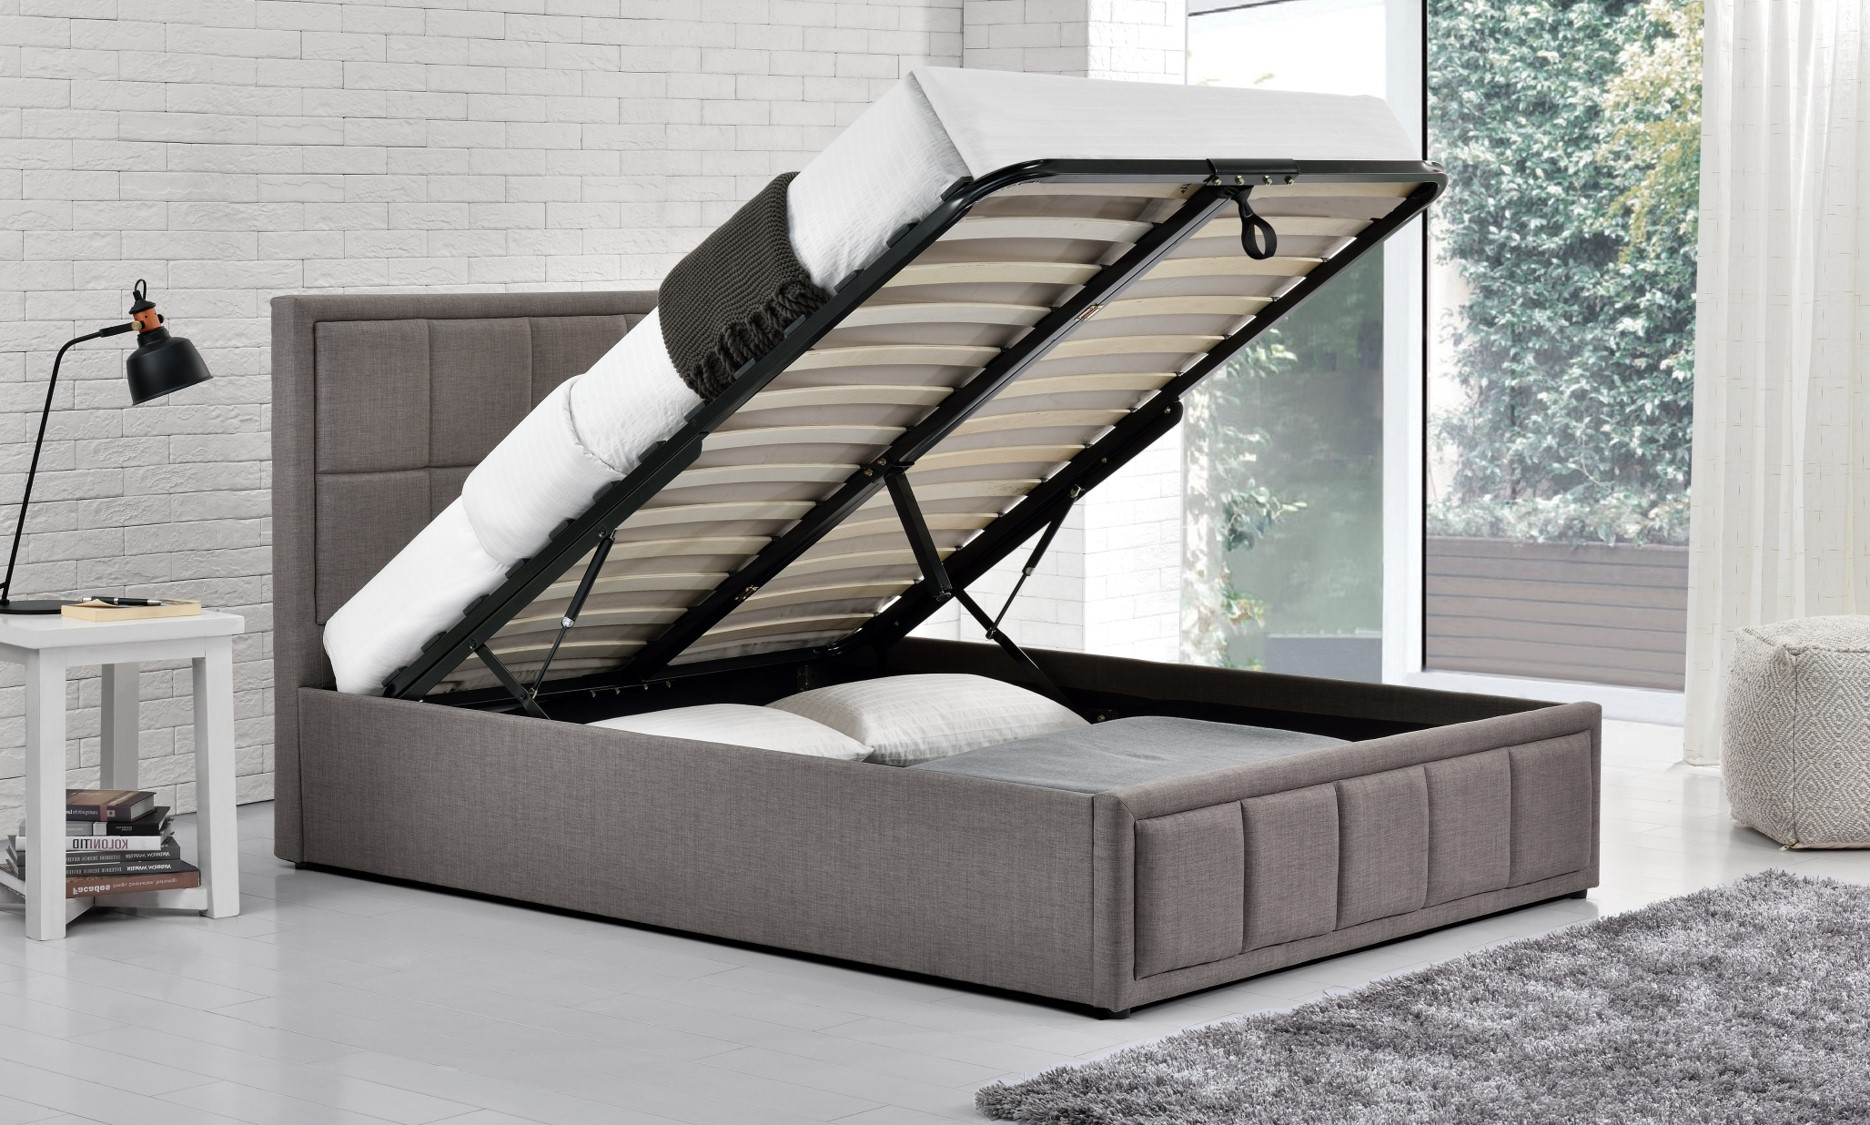 Beds Direct Warehouse Gainsborough Lincolnshire For Cheap Single Beds Double Beds King Size